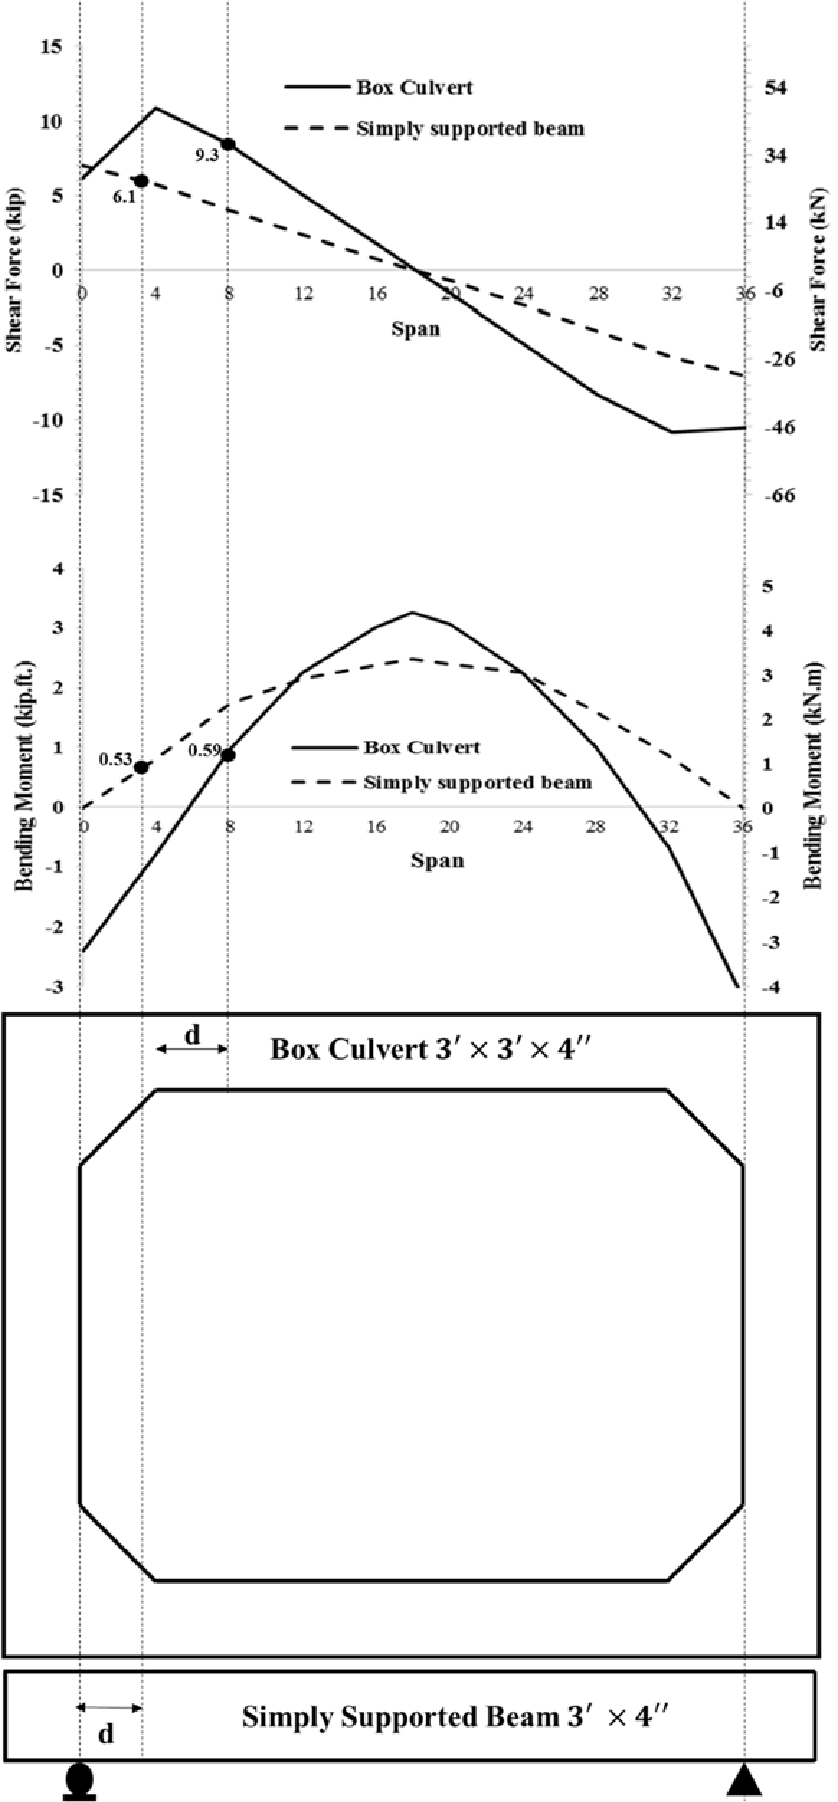 Shear And Moment Diagrams Shear Force And Bending Moment Diagrams For Box Culvert 3 3 3 3 4